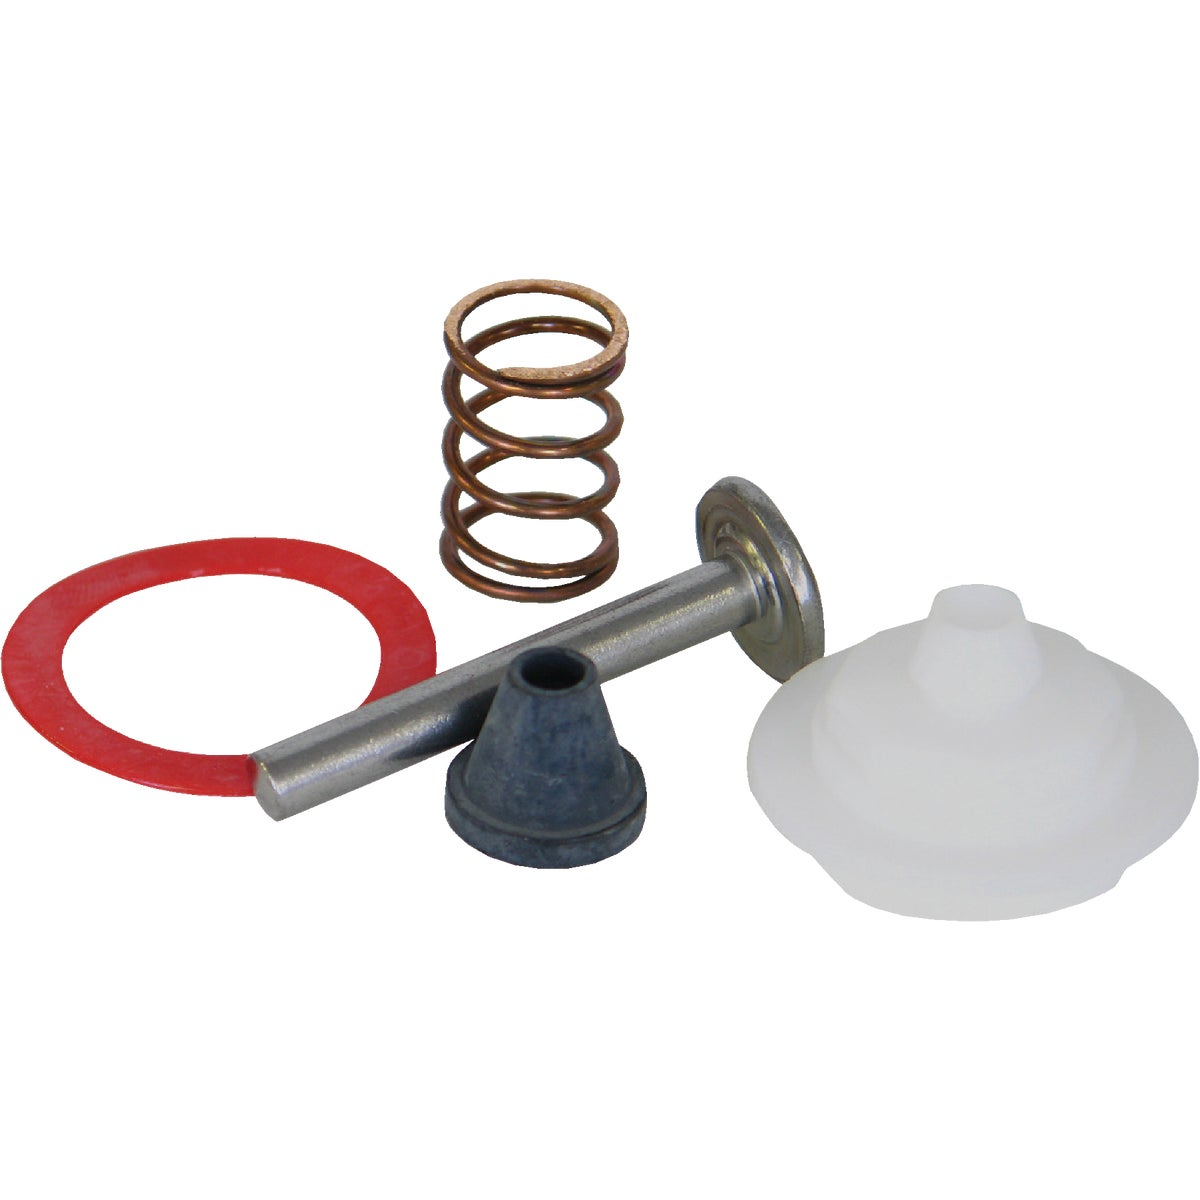 SLOAN HANDLE REPAIR KIT - 089413 by Wm H Harvey Co